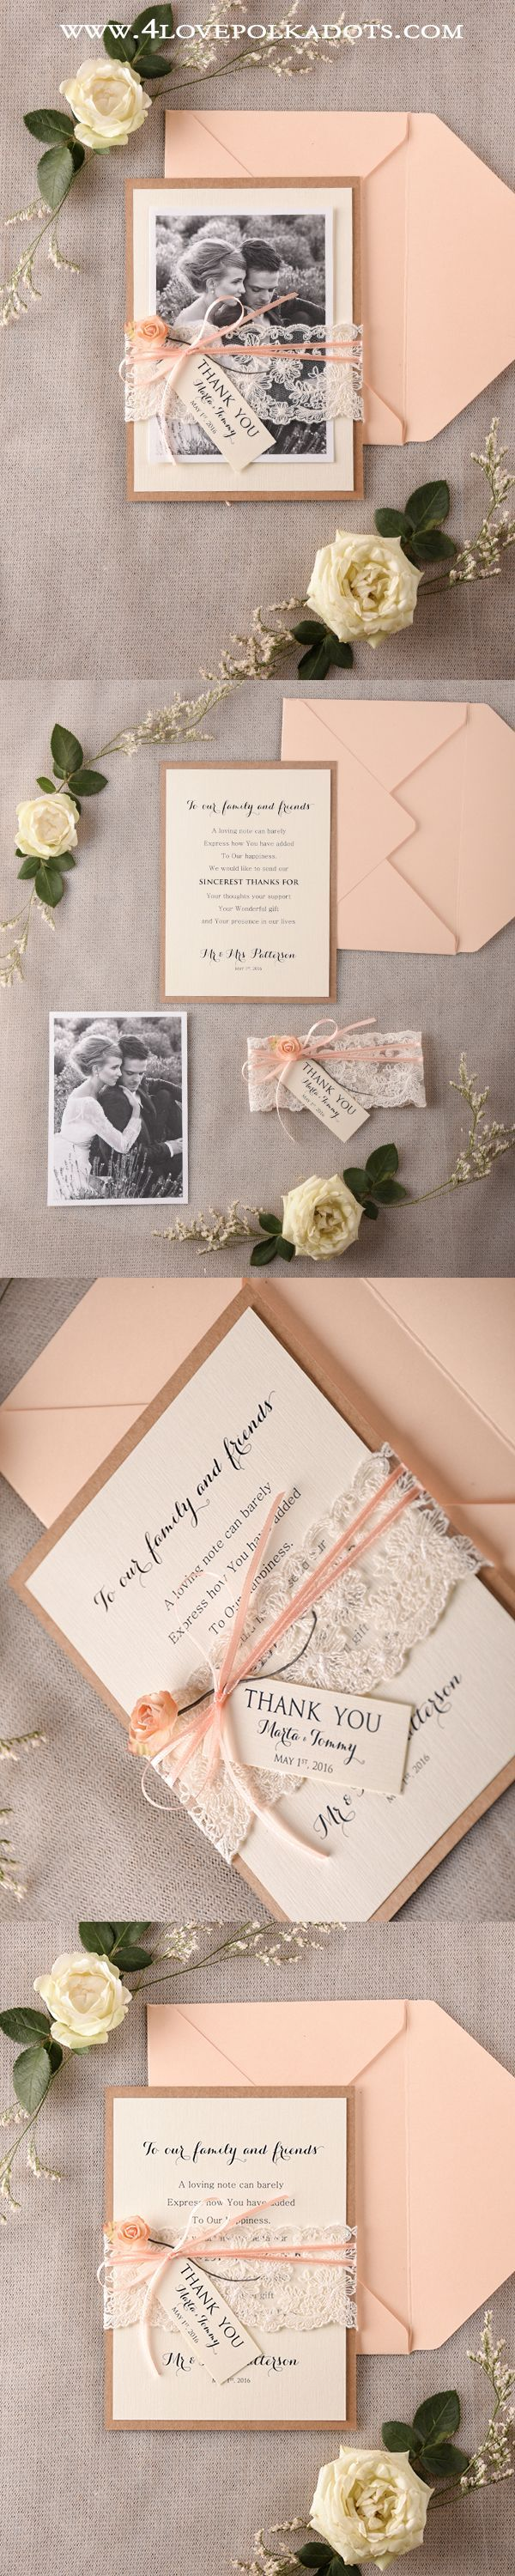 Say Thank You ! Peach Wedding Thank You Cards ! #weddingideas #weddings